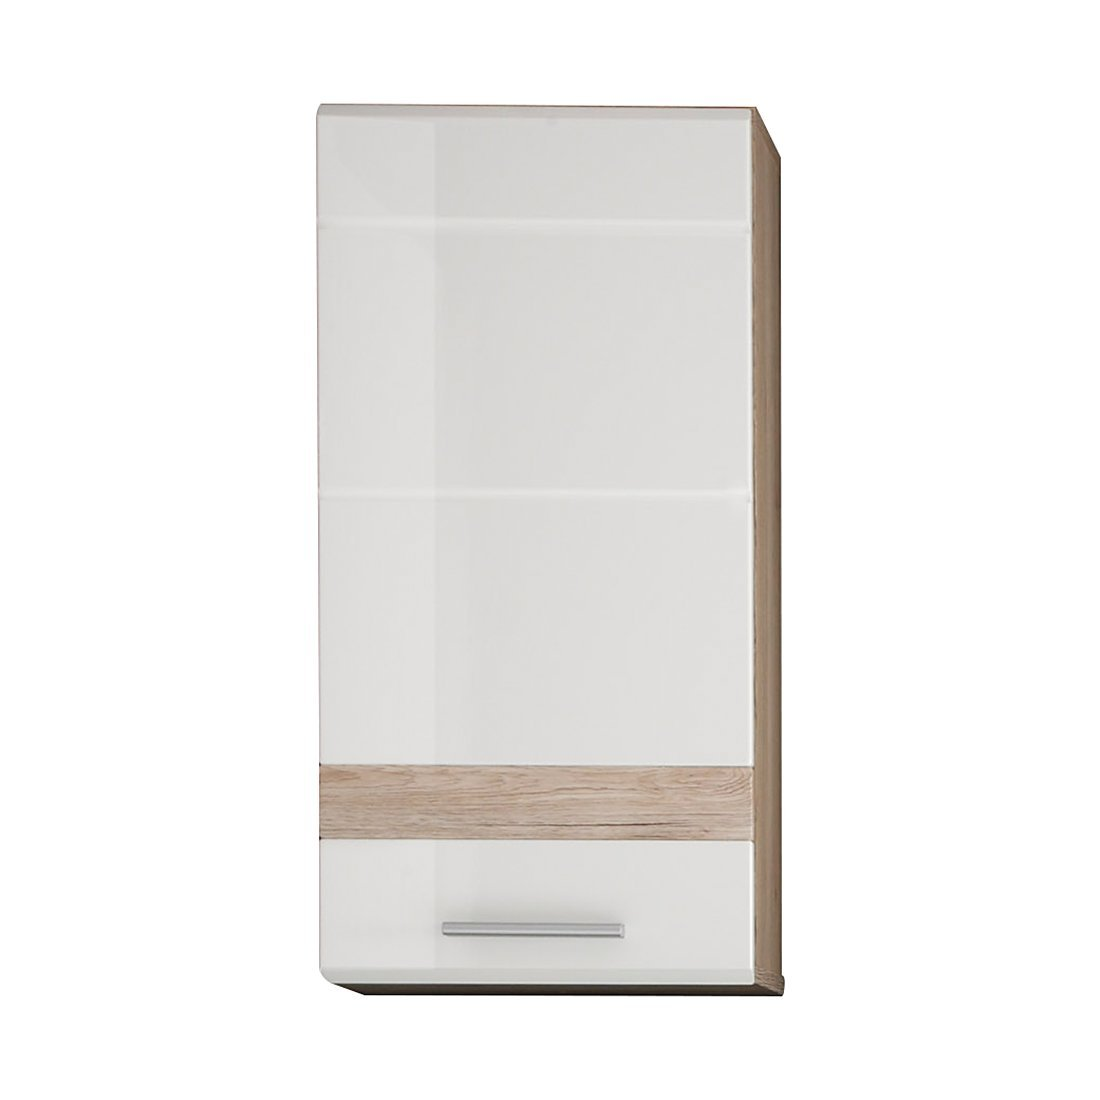 trendteam Muebles, Roble, Blanco, 37 X 77 X 24 cm product image